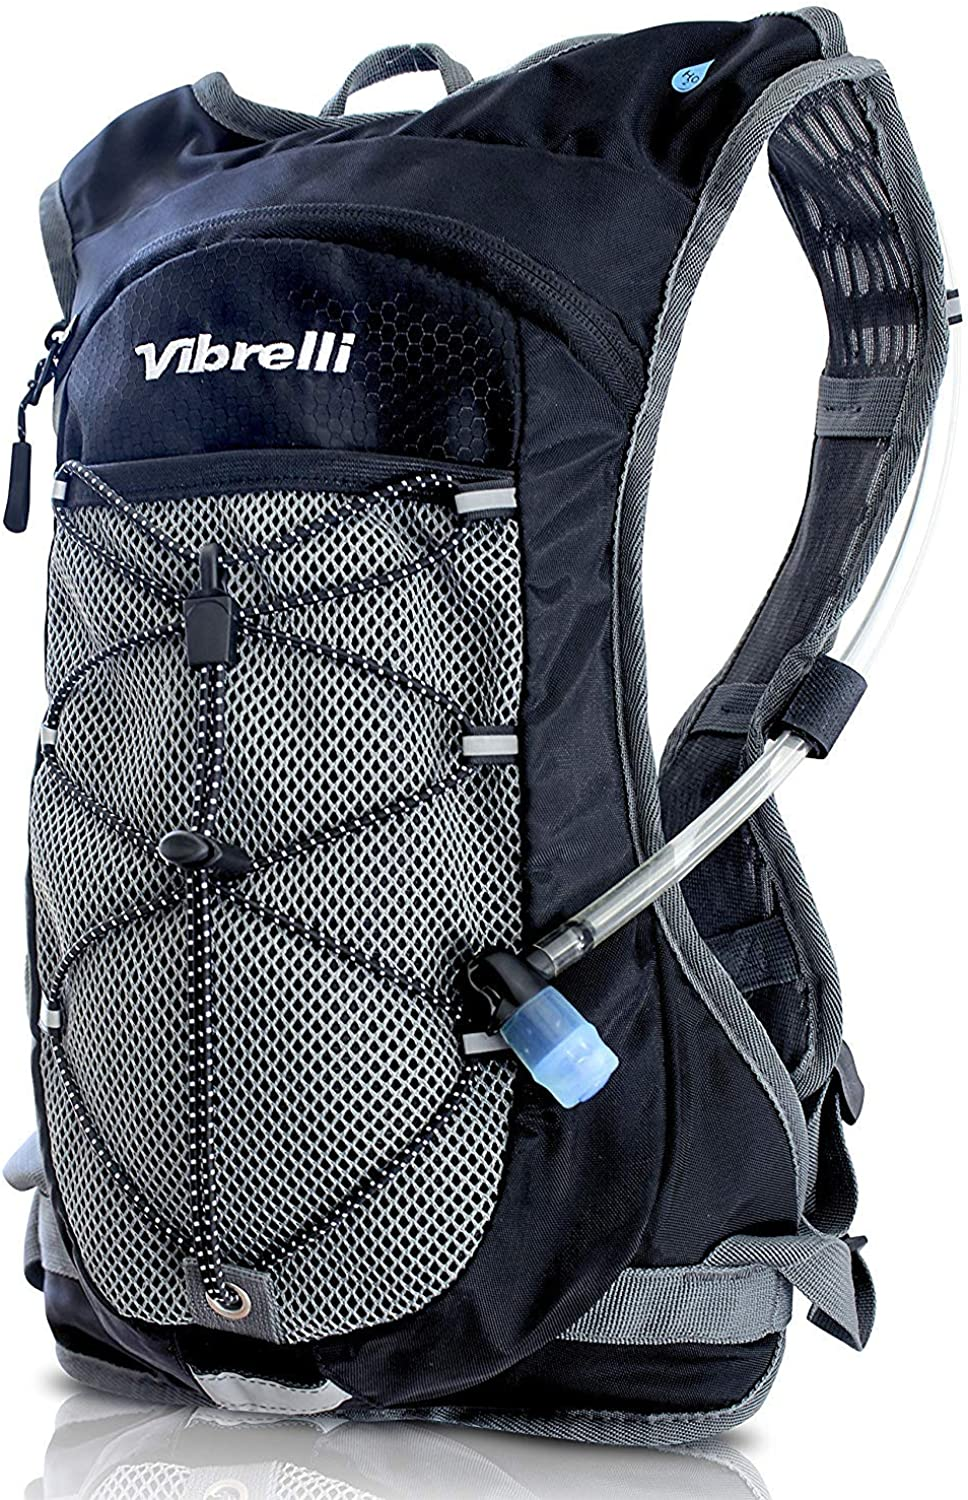 LAUNCH DEAL  Performance Hydration Pack by Vibrelli  BONUS 2.0L Hydration Bladder  Perfect Hydration Backpack for Running, Hiking, Cycling. Water Backpack